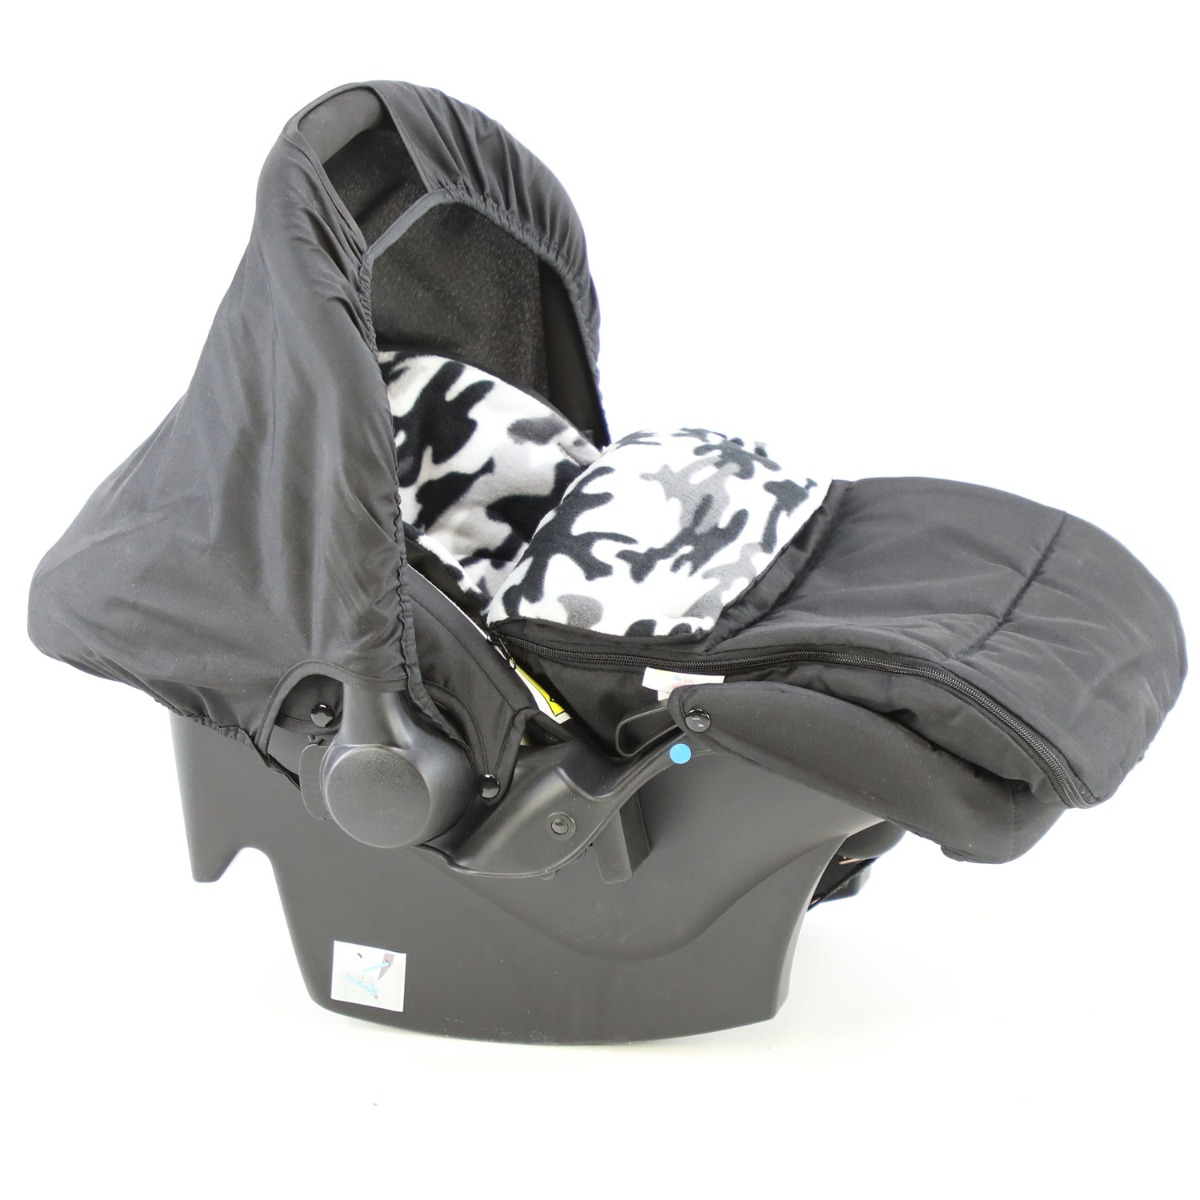 Cosy Toes Baby Compatible with Joie Fleece Car Seat Footmuff